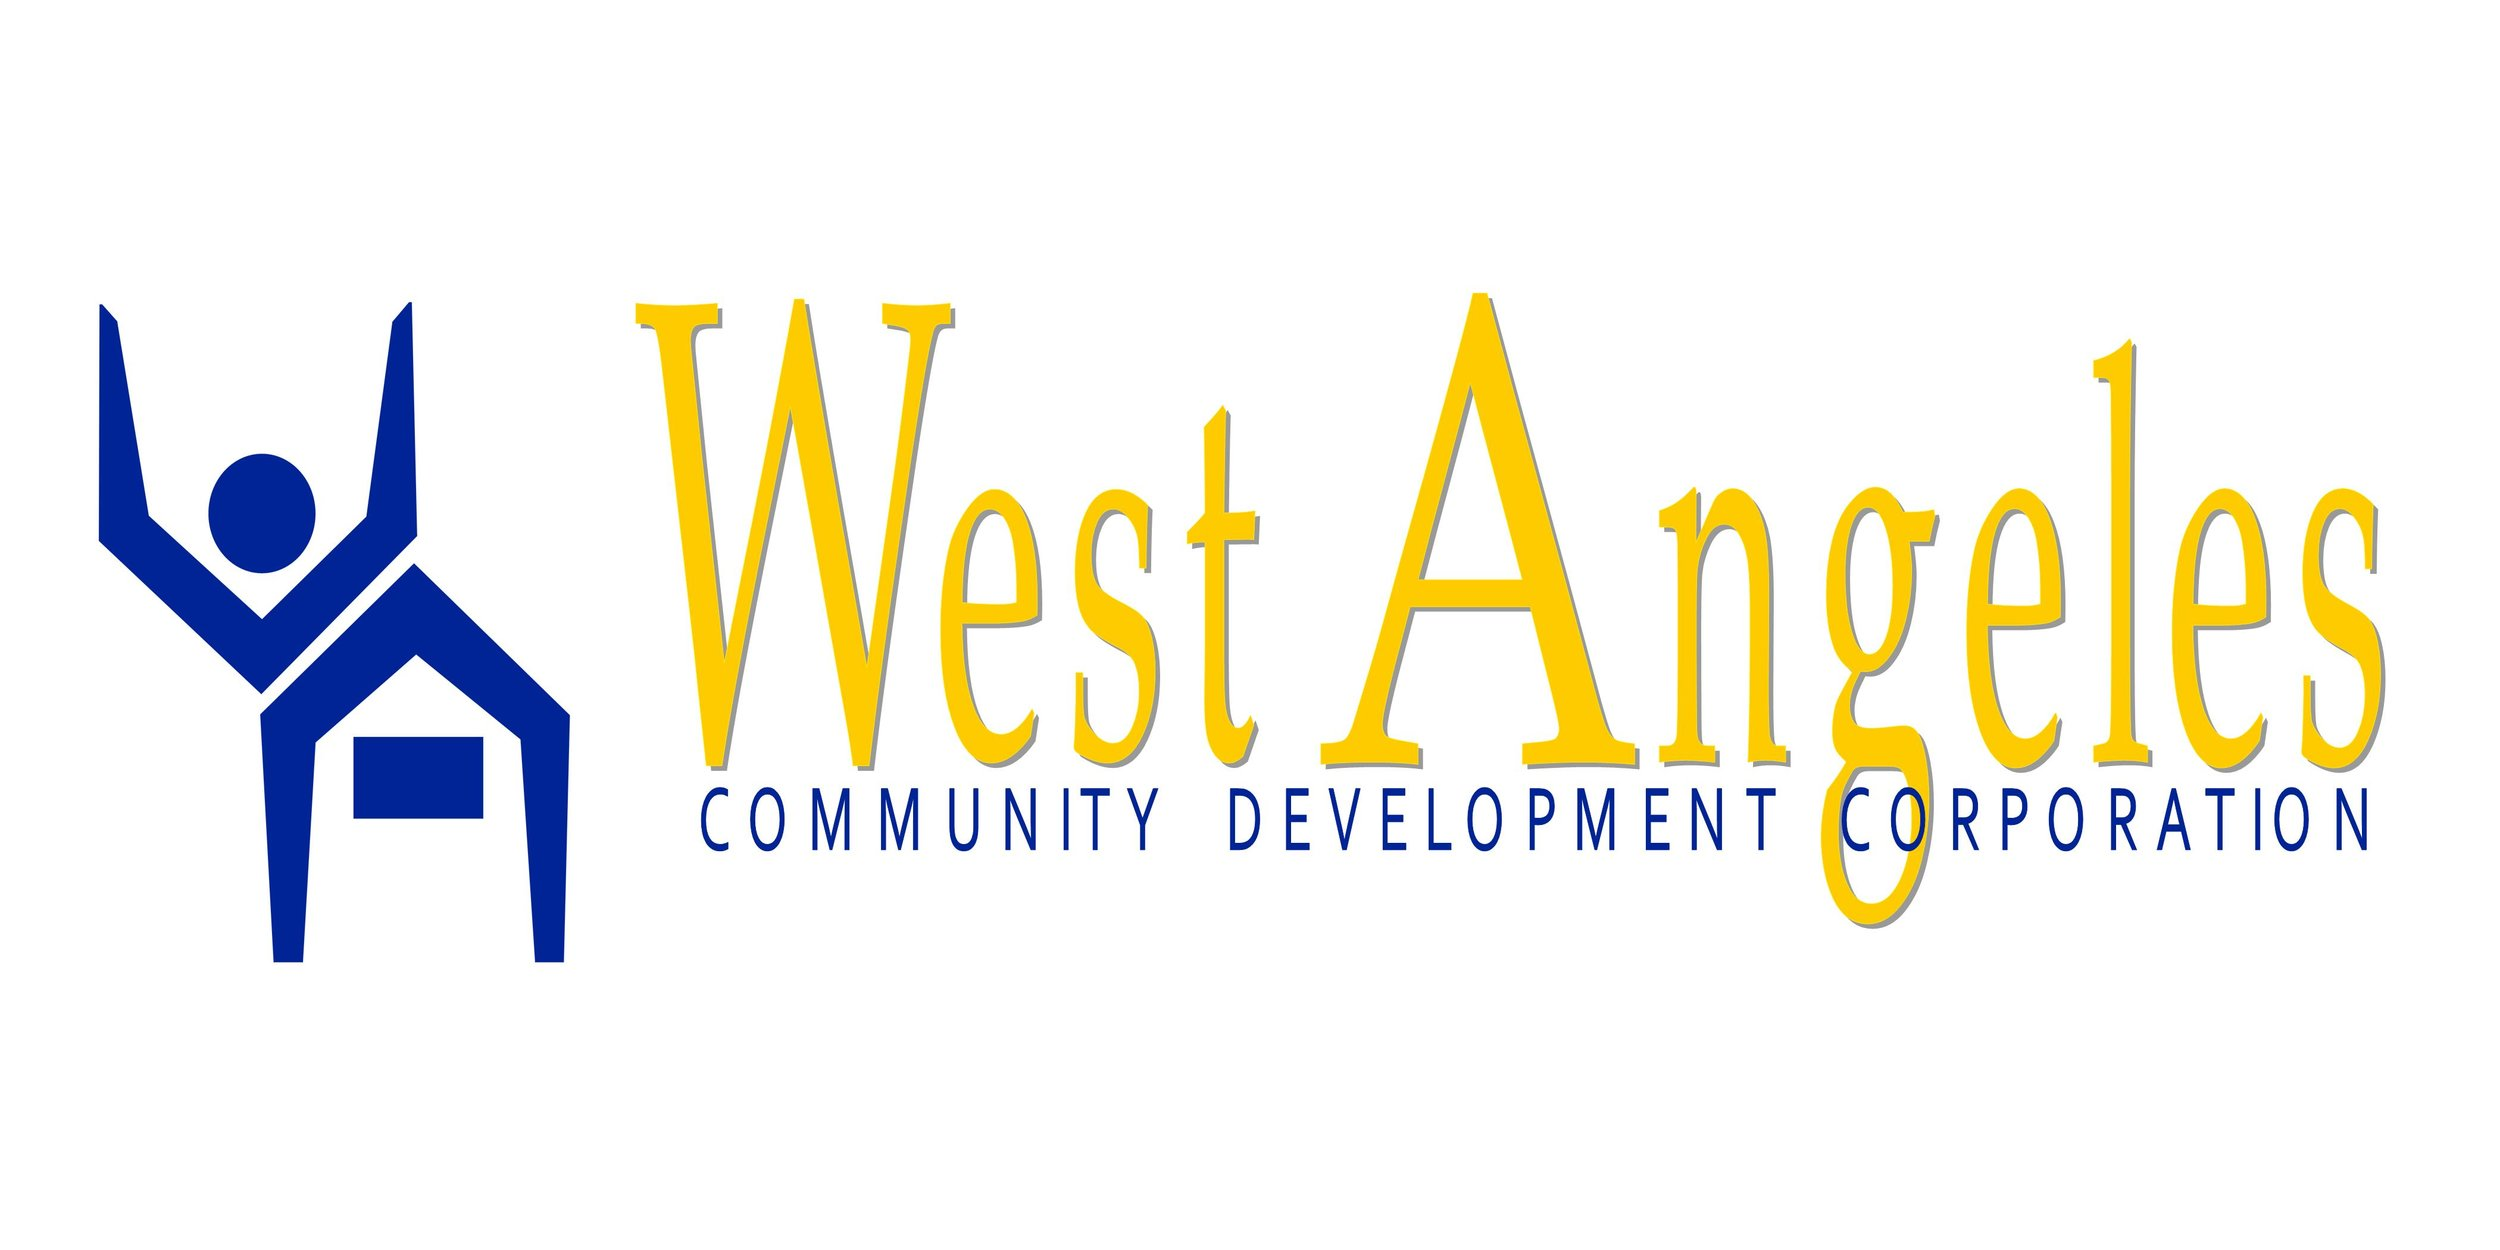 West Angeles Community Development Corporation    Crenshaw Blvd. between W. 52nd St. and W. 63rd St. (CD8)    Project goal:  To create a safe, highly livable, and engaging Crenshaw Corridor, accessible to seniors, youth, families, residents, visitors, and persons of all abilities. It can become a corridor that connects the greater Park Mesa Heights/Hyde Park Neighborhood to existing amenities, public transportation, and local businesses.